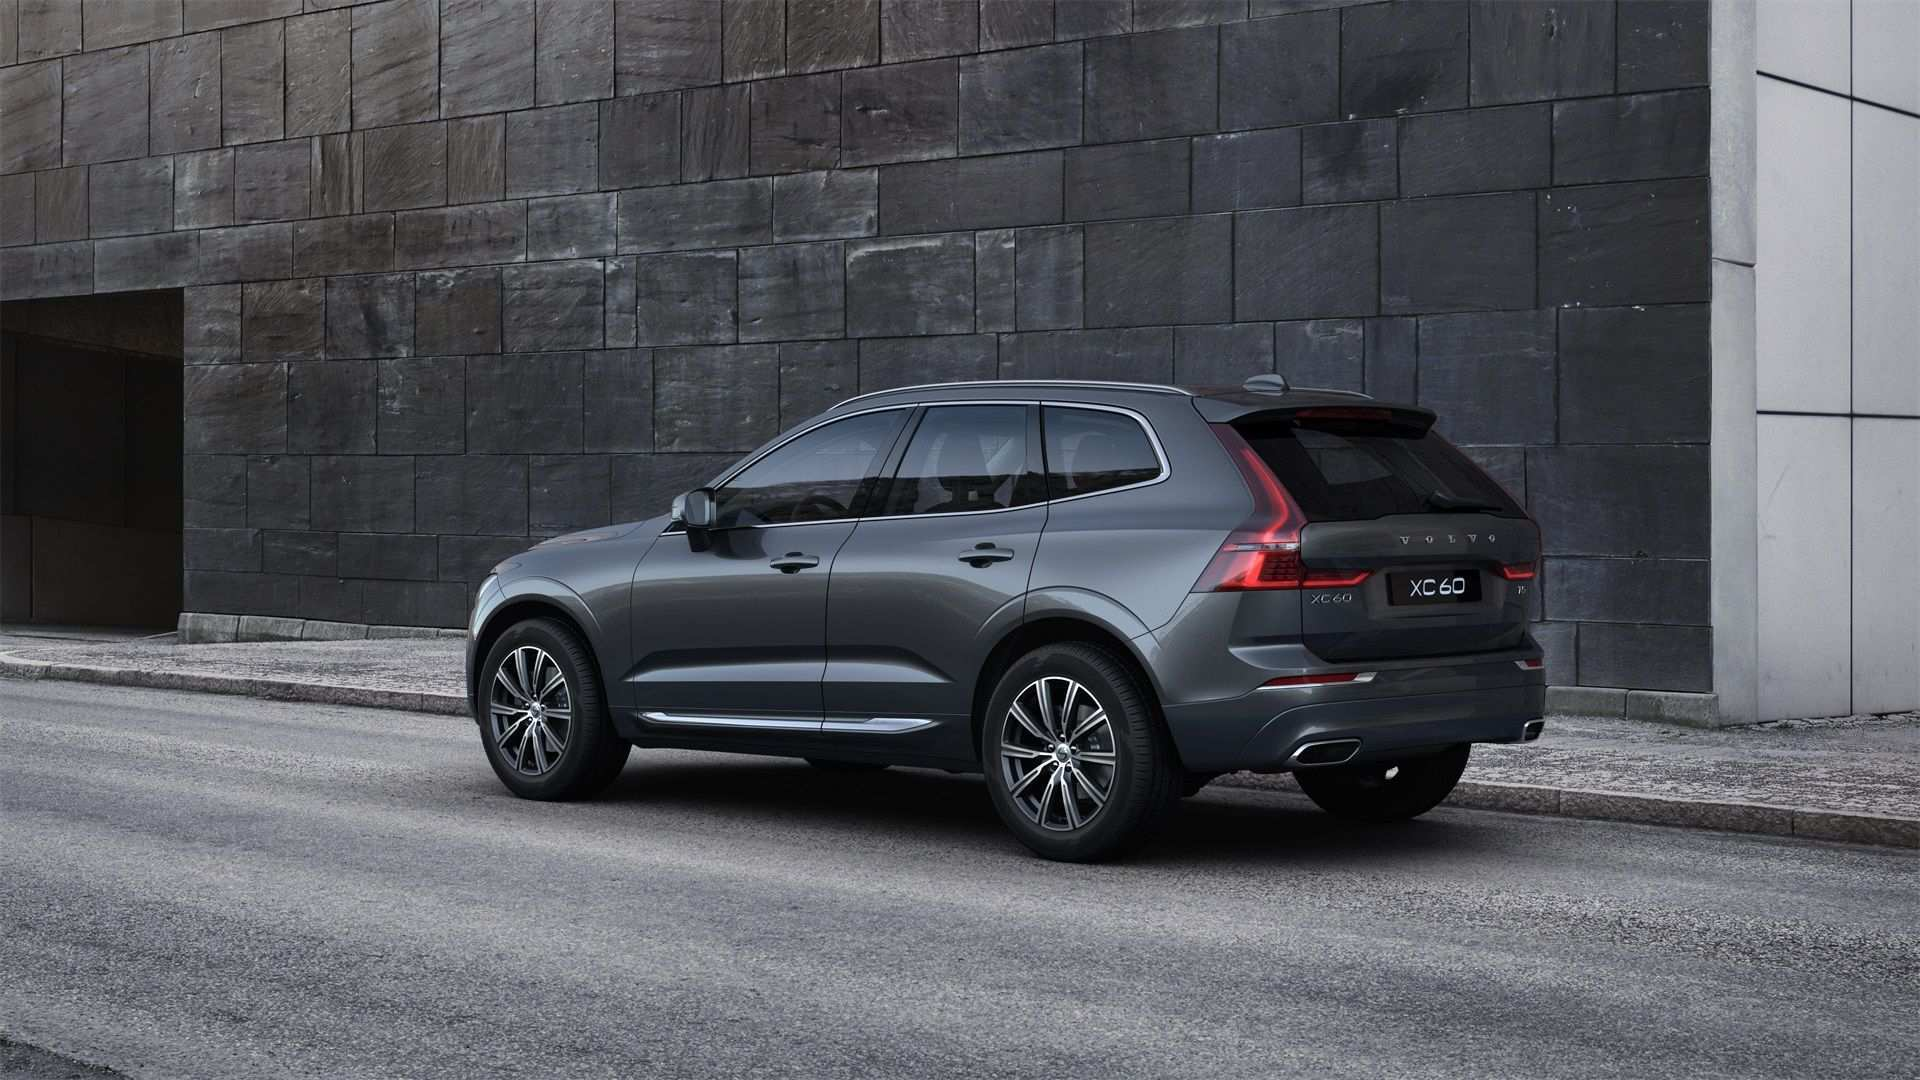 41 Concept of Volvo Xc60 2019 Osmium Grey Overview for Volvo Xc60 2019 Osmium Grey